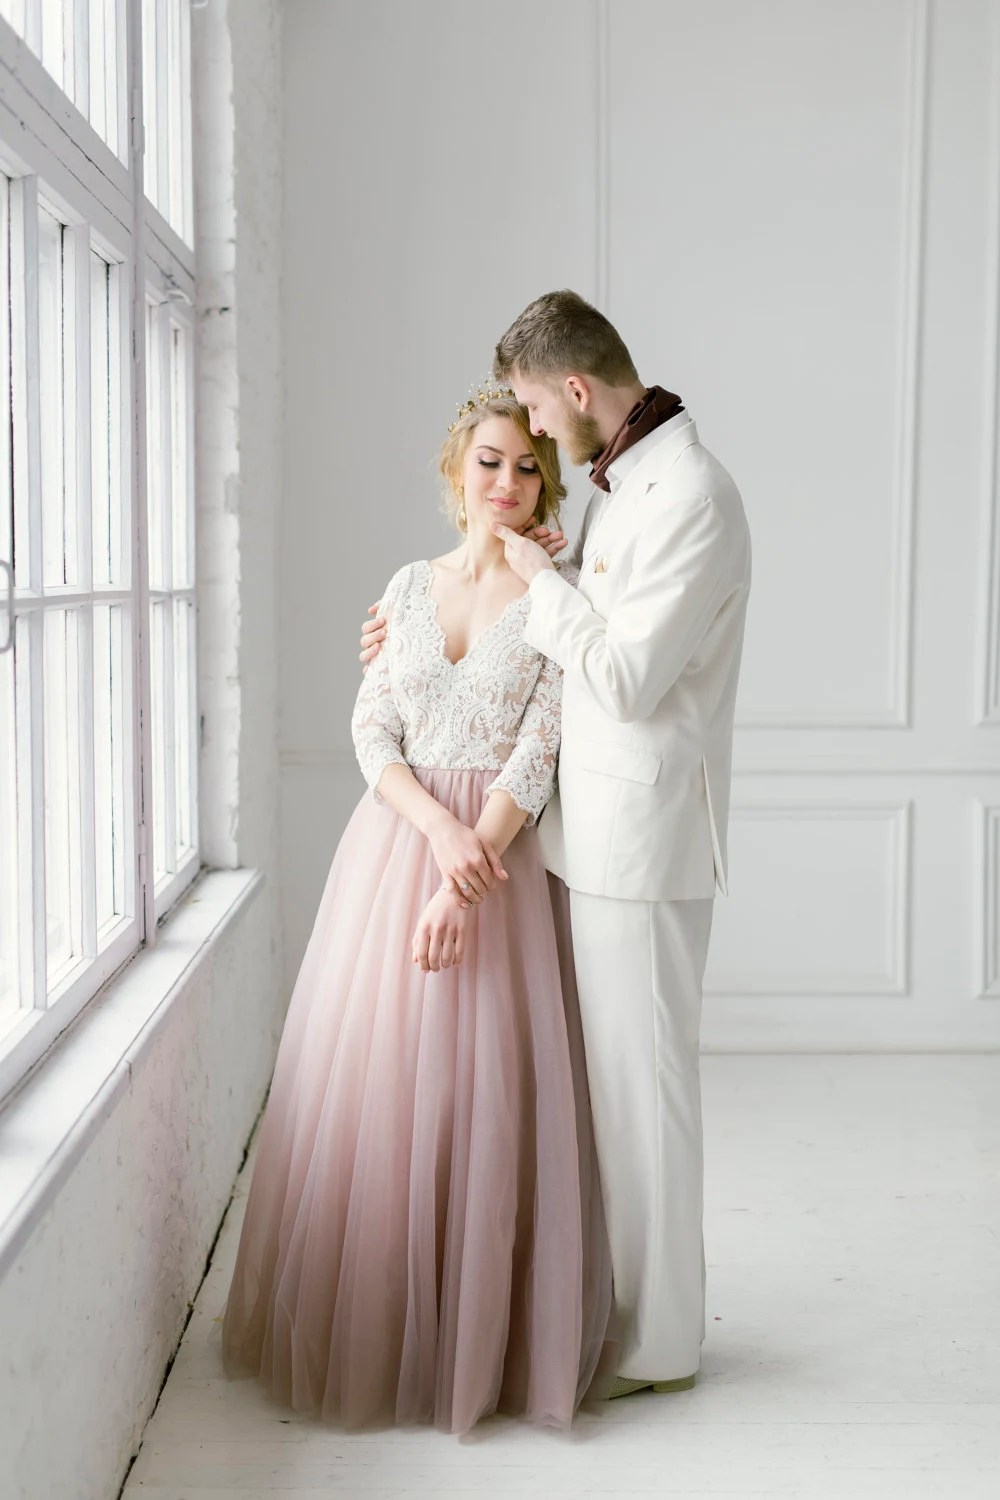 blush wedding dress blush wedding dresses Blush tulle dress blush long dress blush wedding dress blush gown color wedding dress blush and white gown